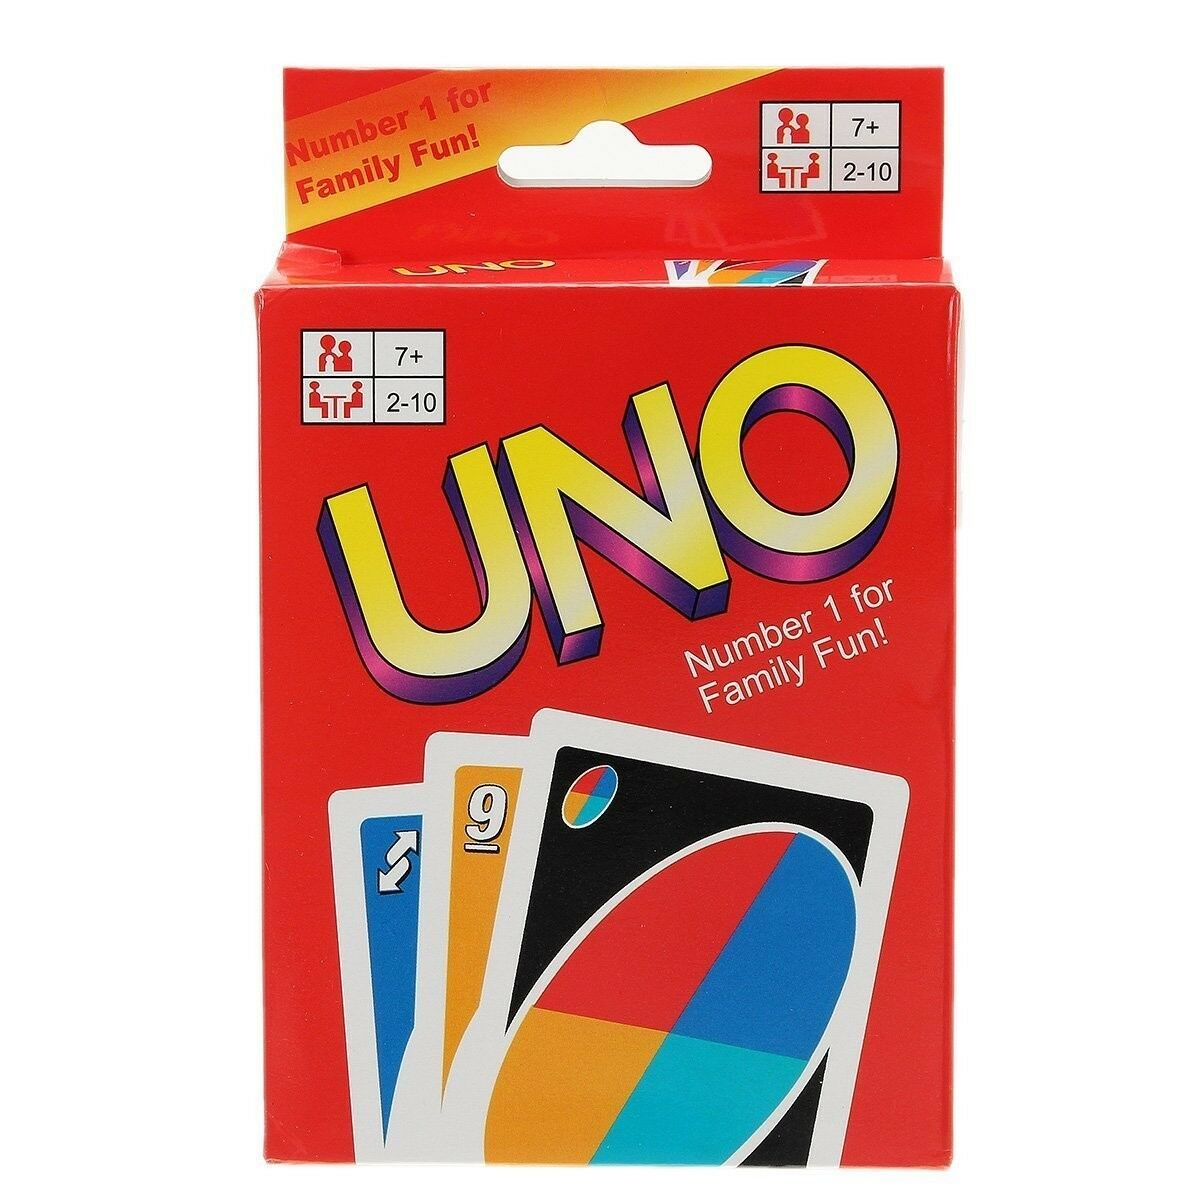 Fun UNO Card Game 108 Playing Cards.Wholesale Stock ( 30 Uno Card Game units)